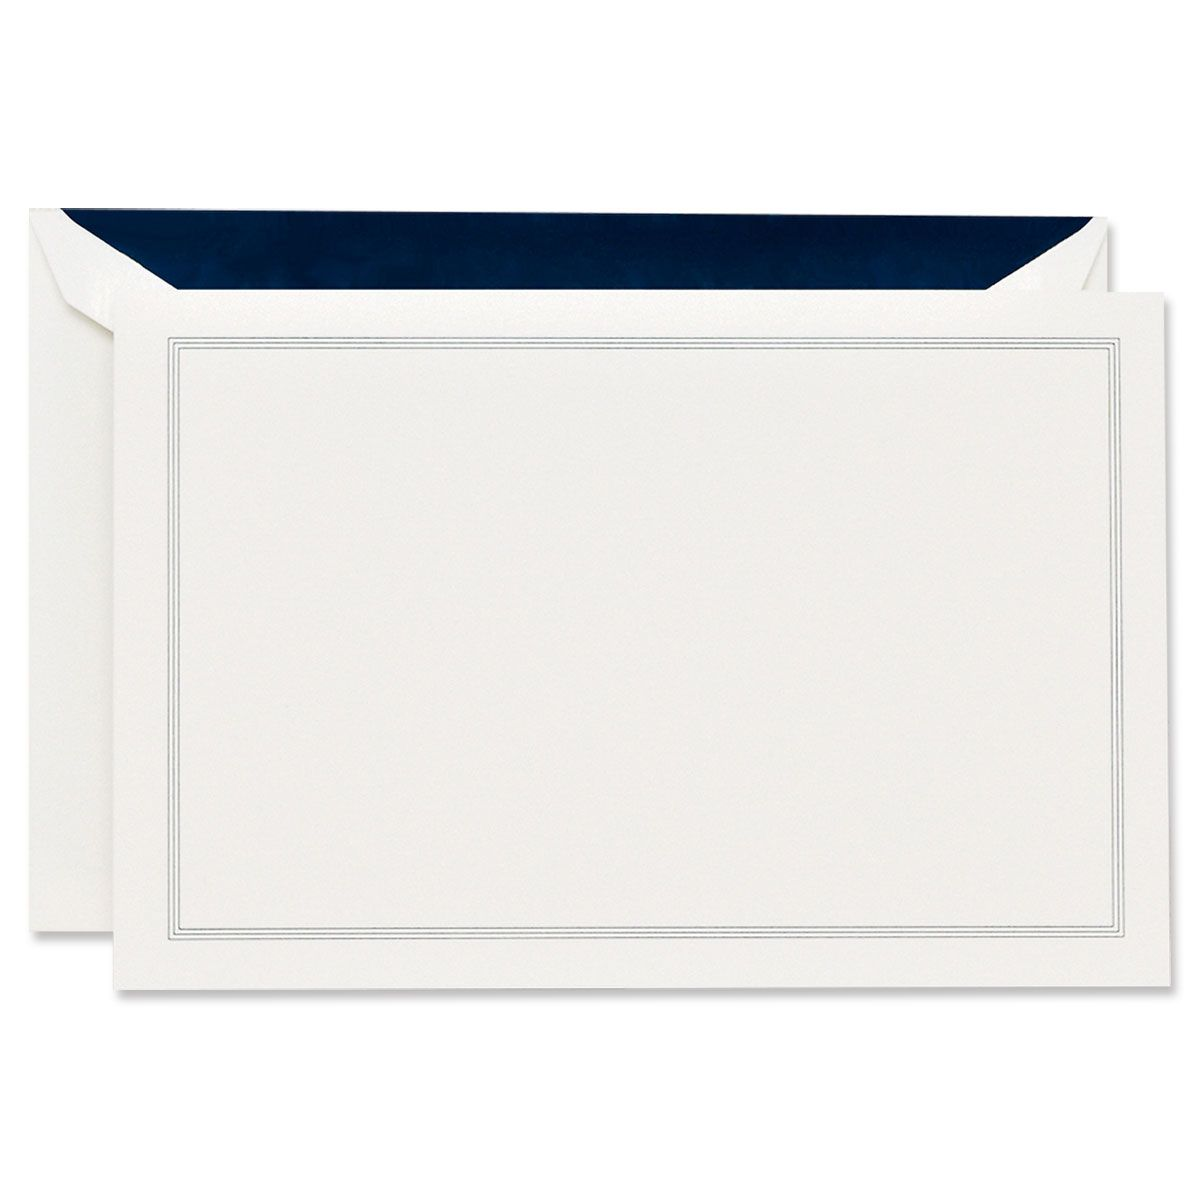 Navy Blue Triple Hairline Frame White Correspondence Cards Boxed Set